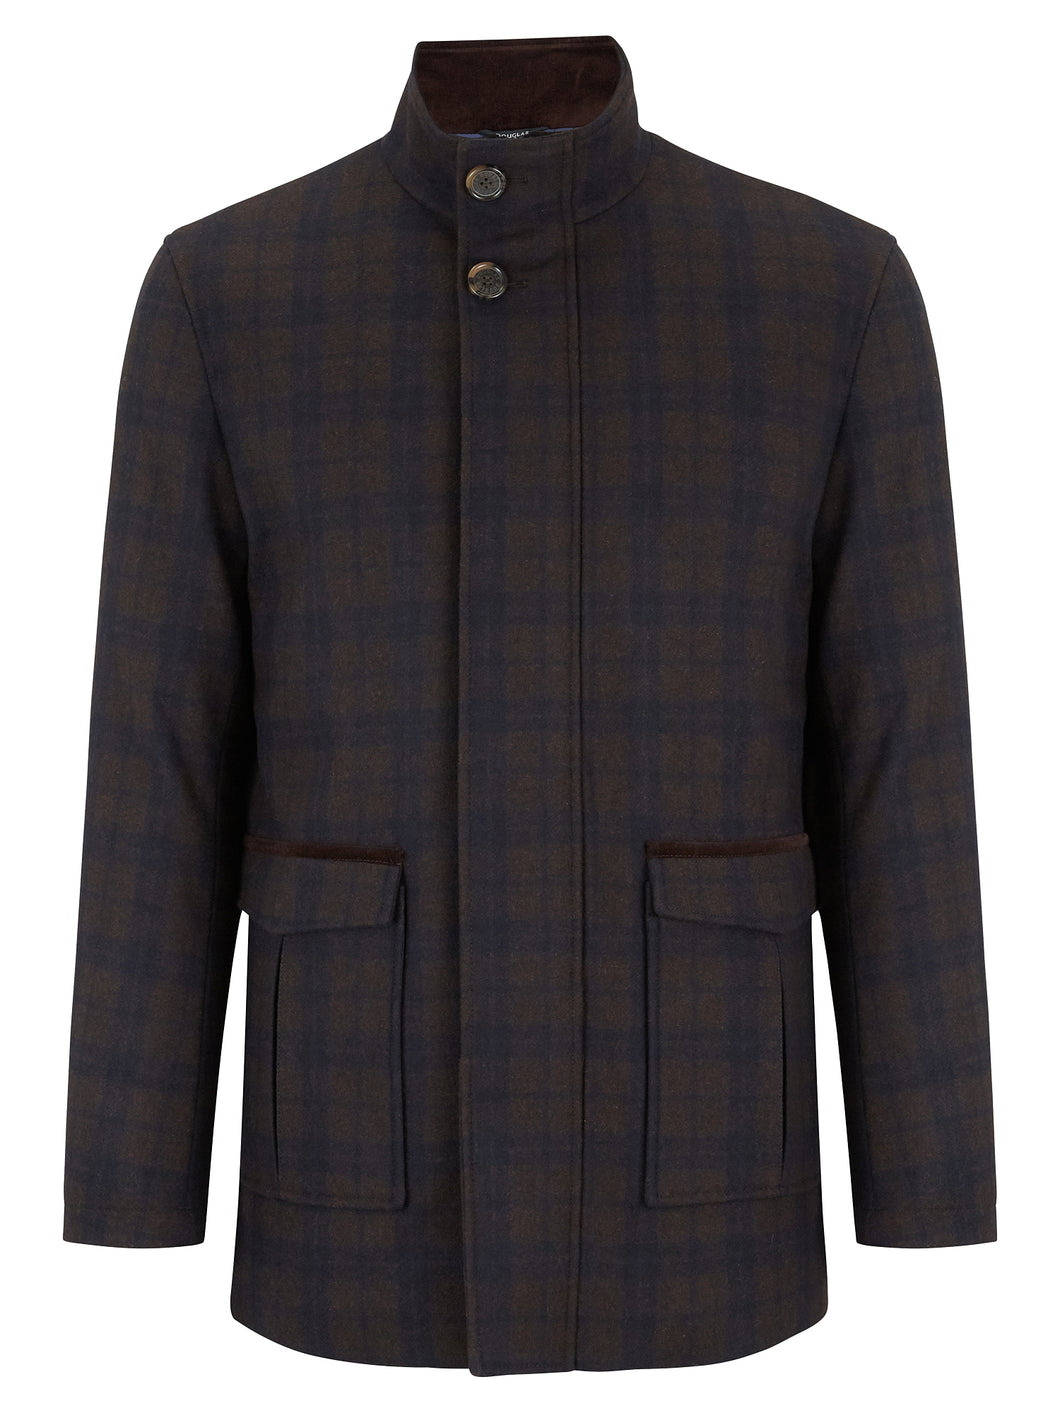 Douglas - Tailored Coat - Brown/Navy Check